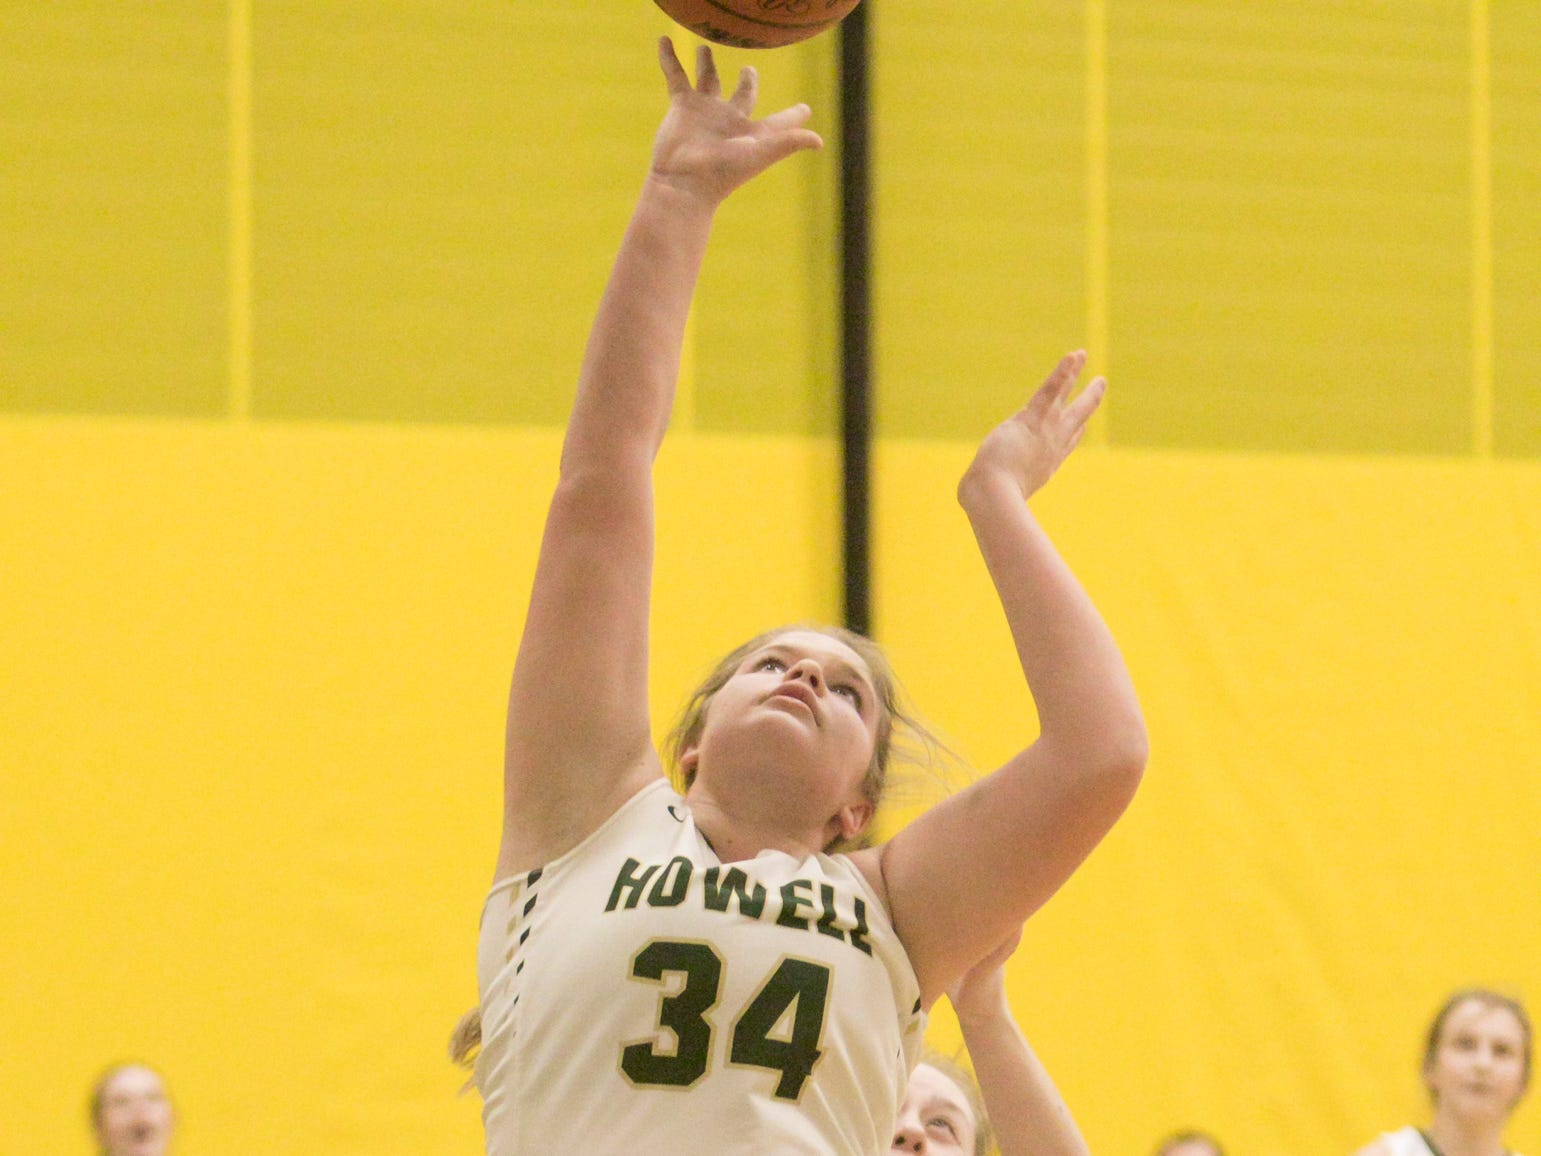 Bryta Mathes of Howell scores in a 48-17 victory over Salem on Tuesday, Feb. 5, 2019.